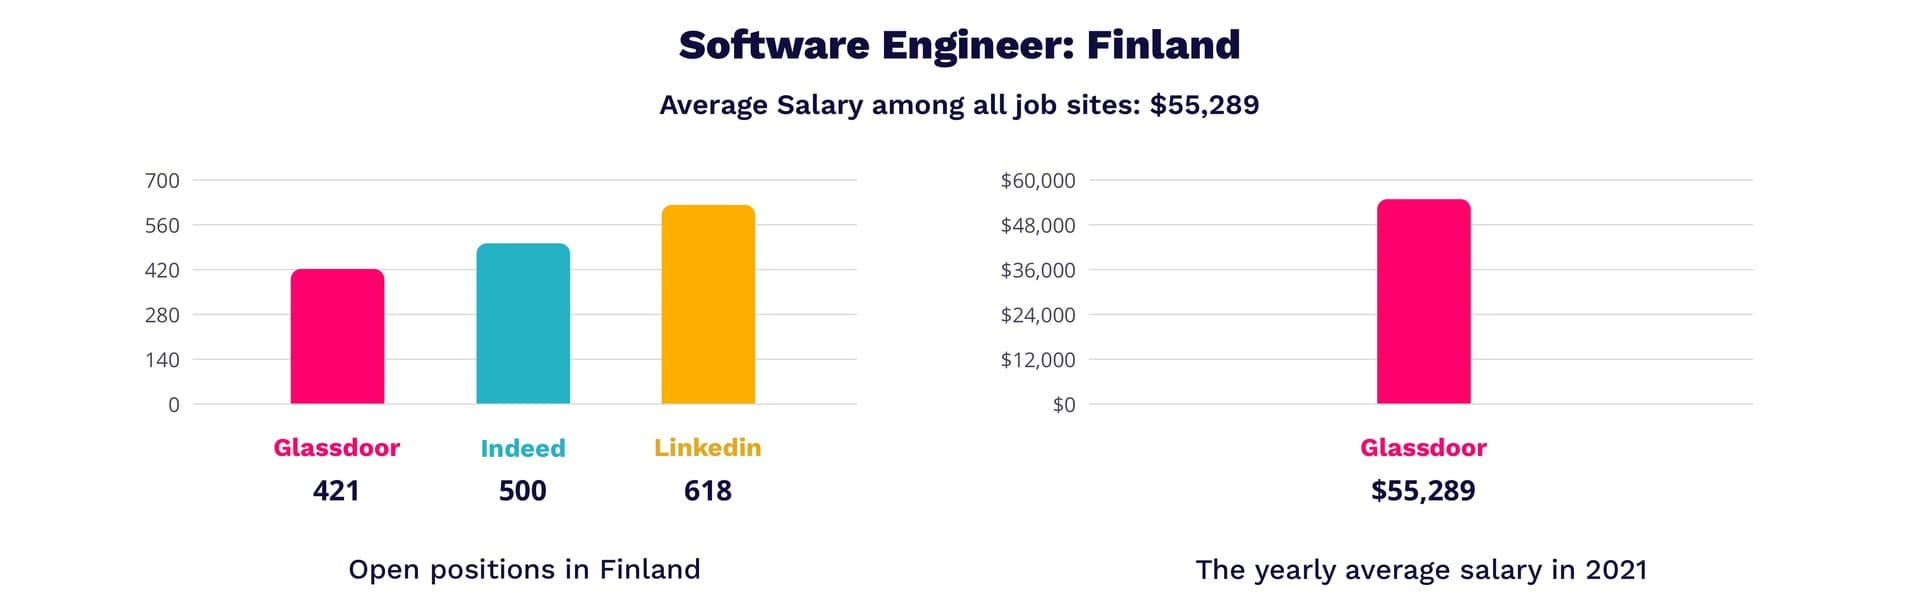 Software engineer salary in Finland